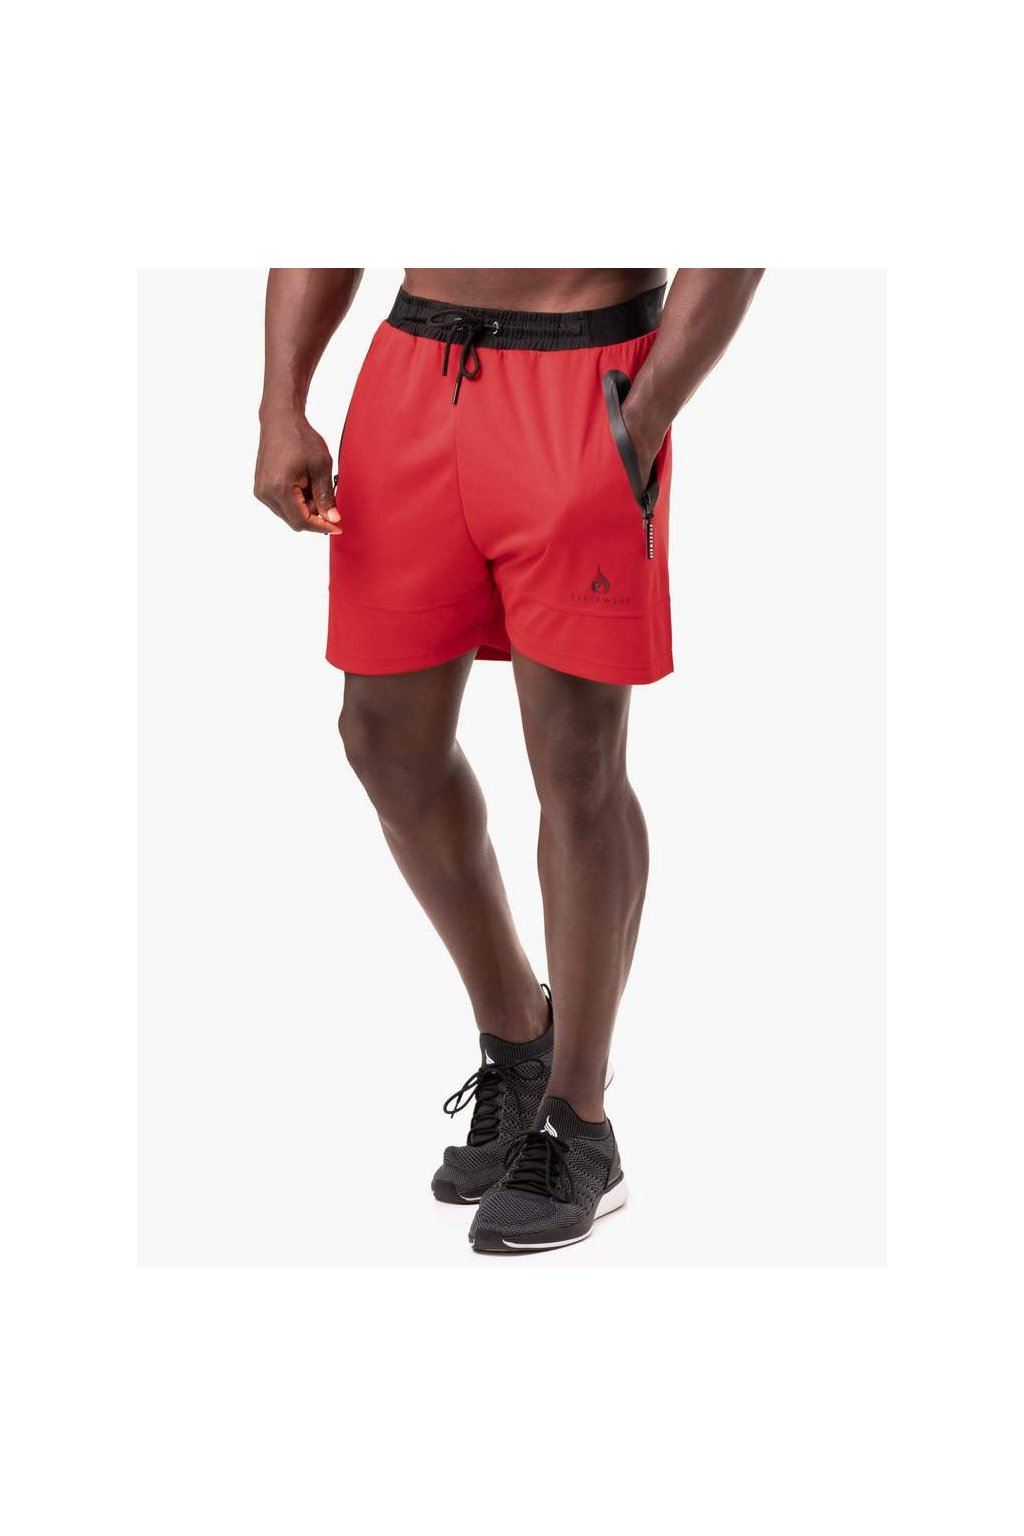 action mesh short red clothing ryderwear 880203 1000x1000